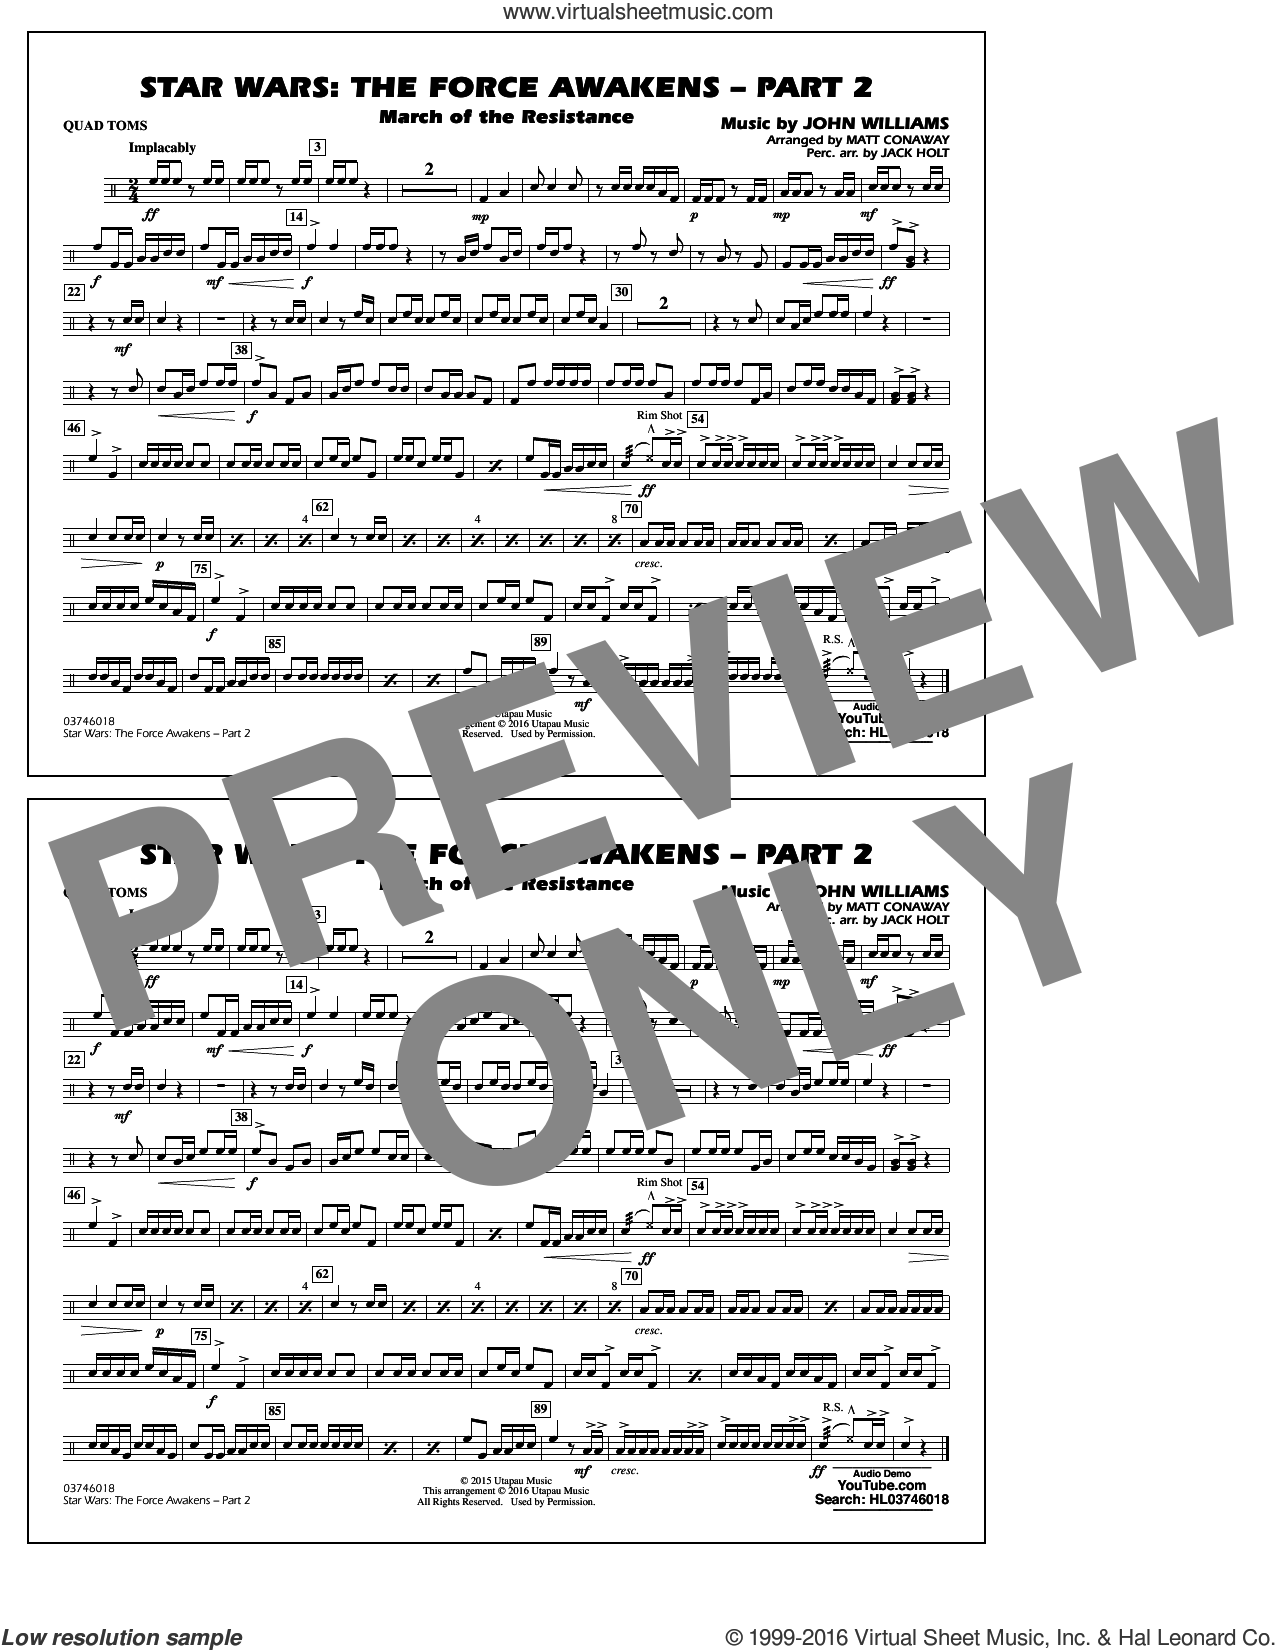 Star Wars: The Force Awakens, part 2 sheet music for marching band (quad toms) by John Williams and Matt Conaway, classical score, intermediate skill level